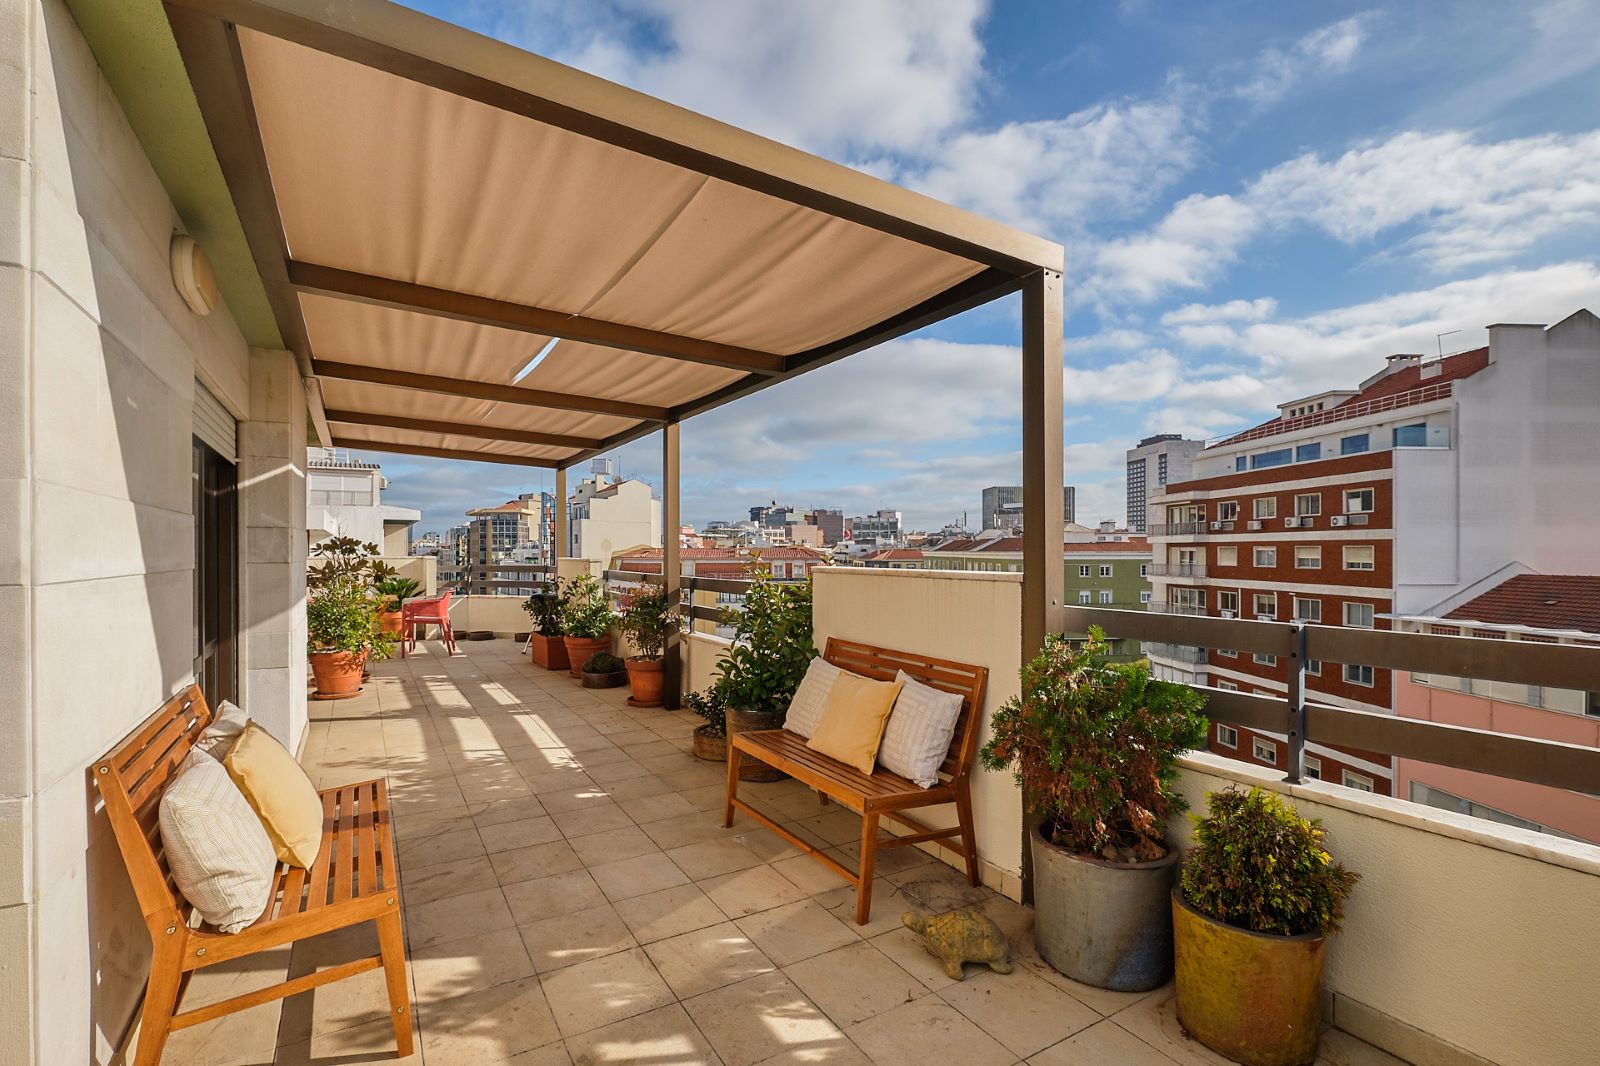 4-BEDROOM APARTMENT WITH TERRACE NEXT TO EL CORTE INGLÉS, LISBON